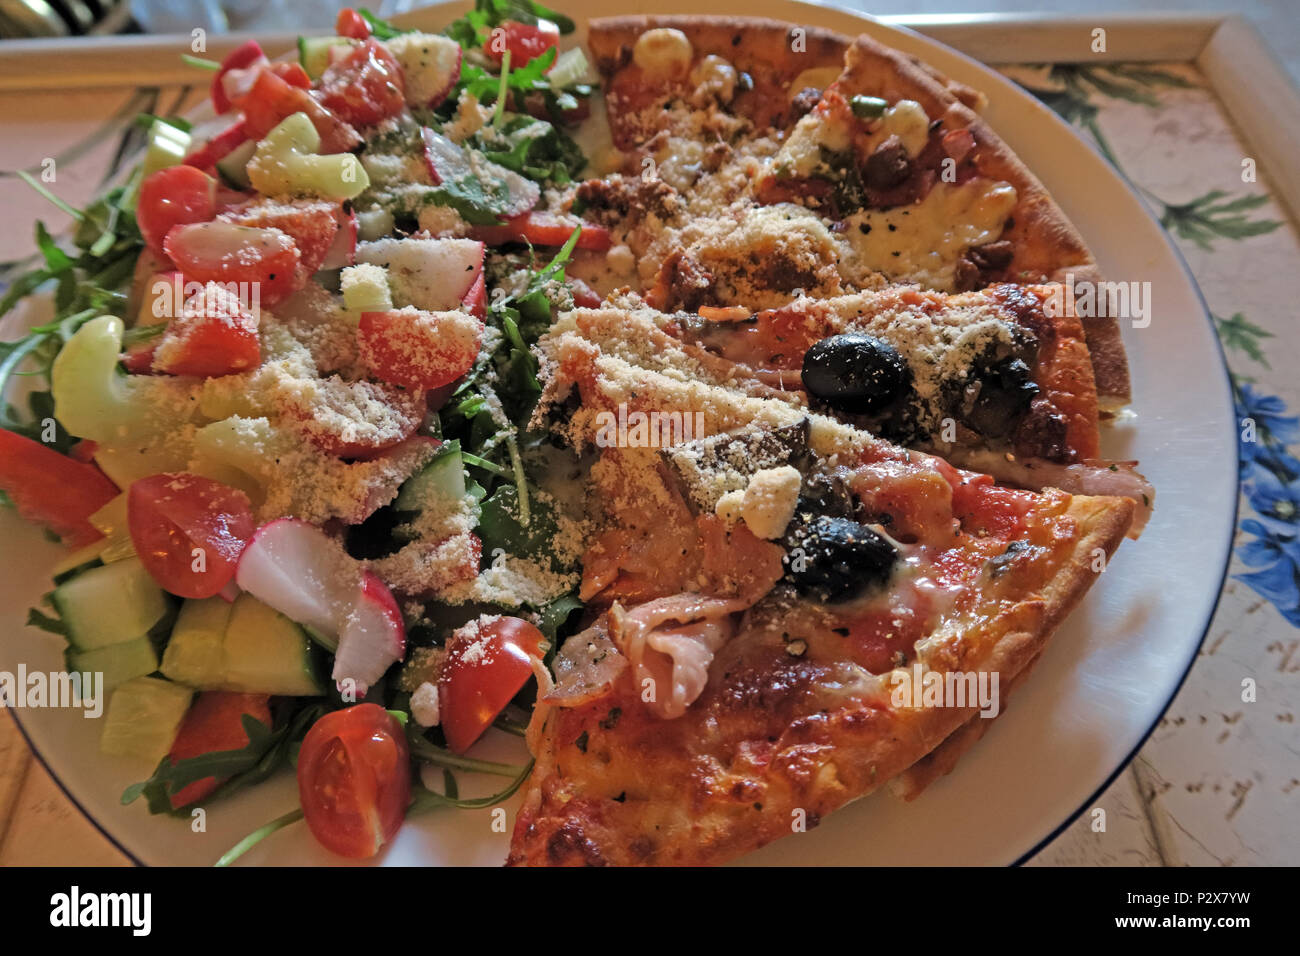 High caloriie home pizza with salad, Parmesan cheese - Stock Image